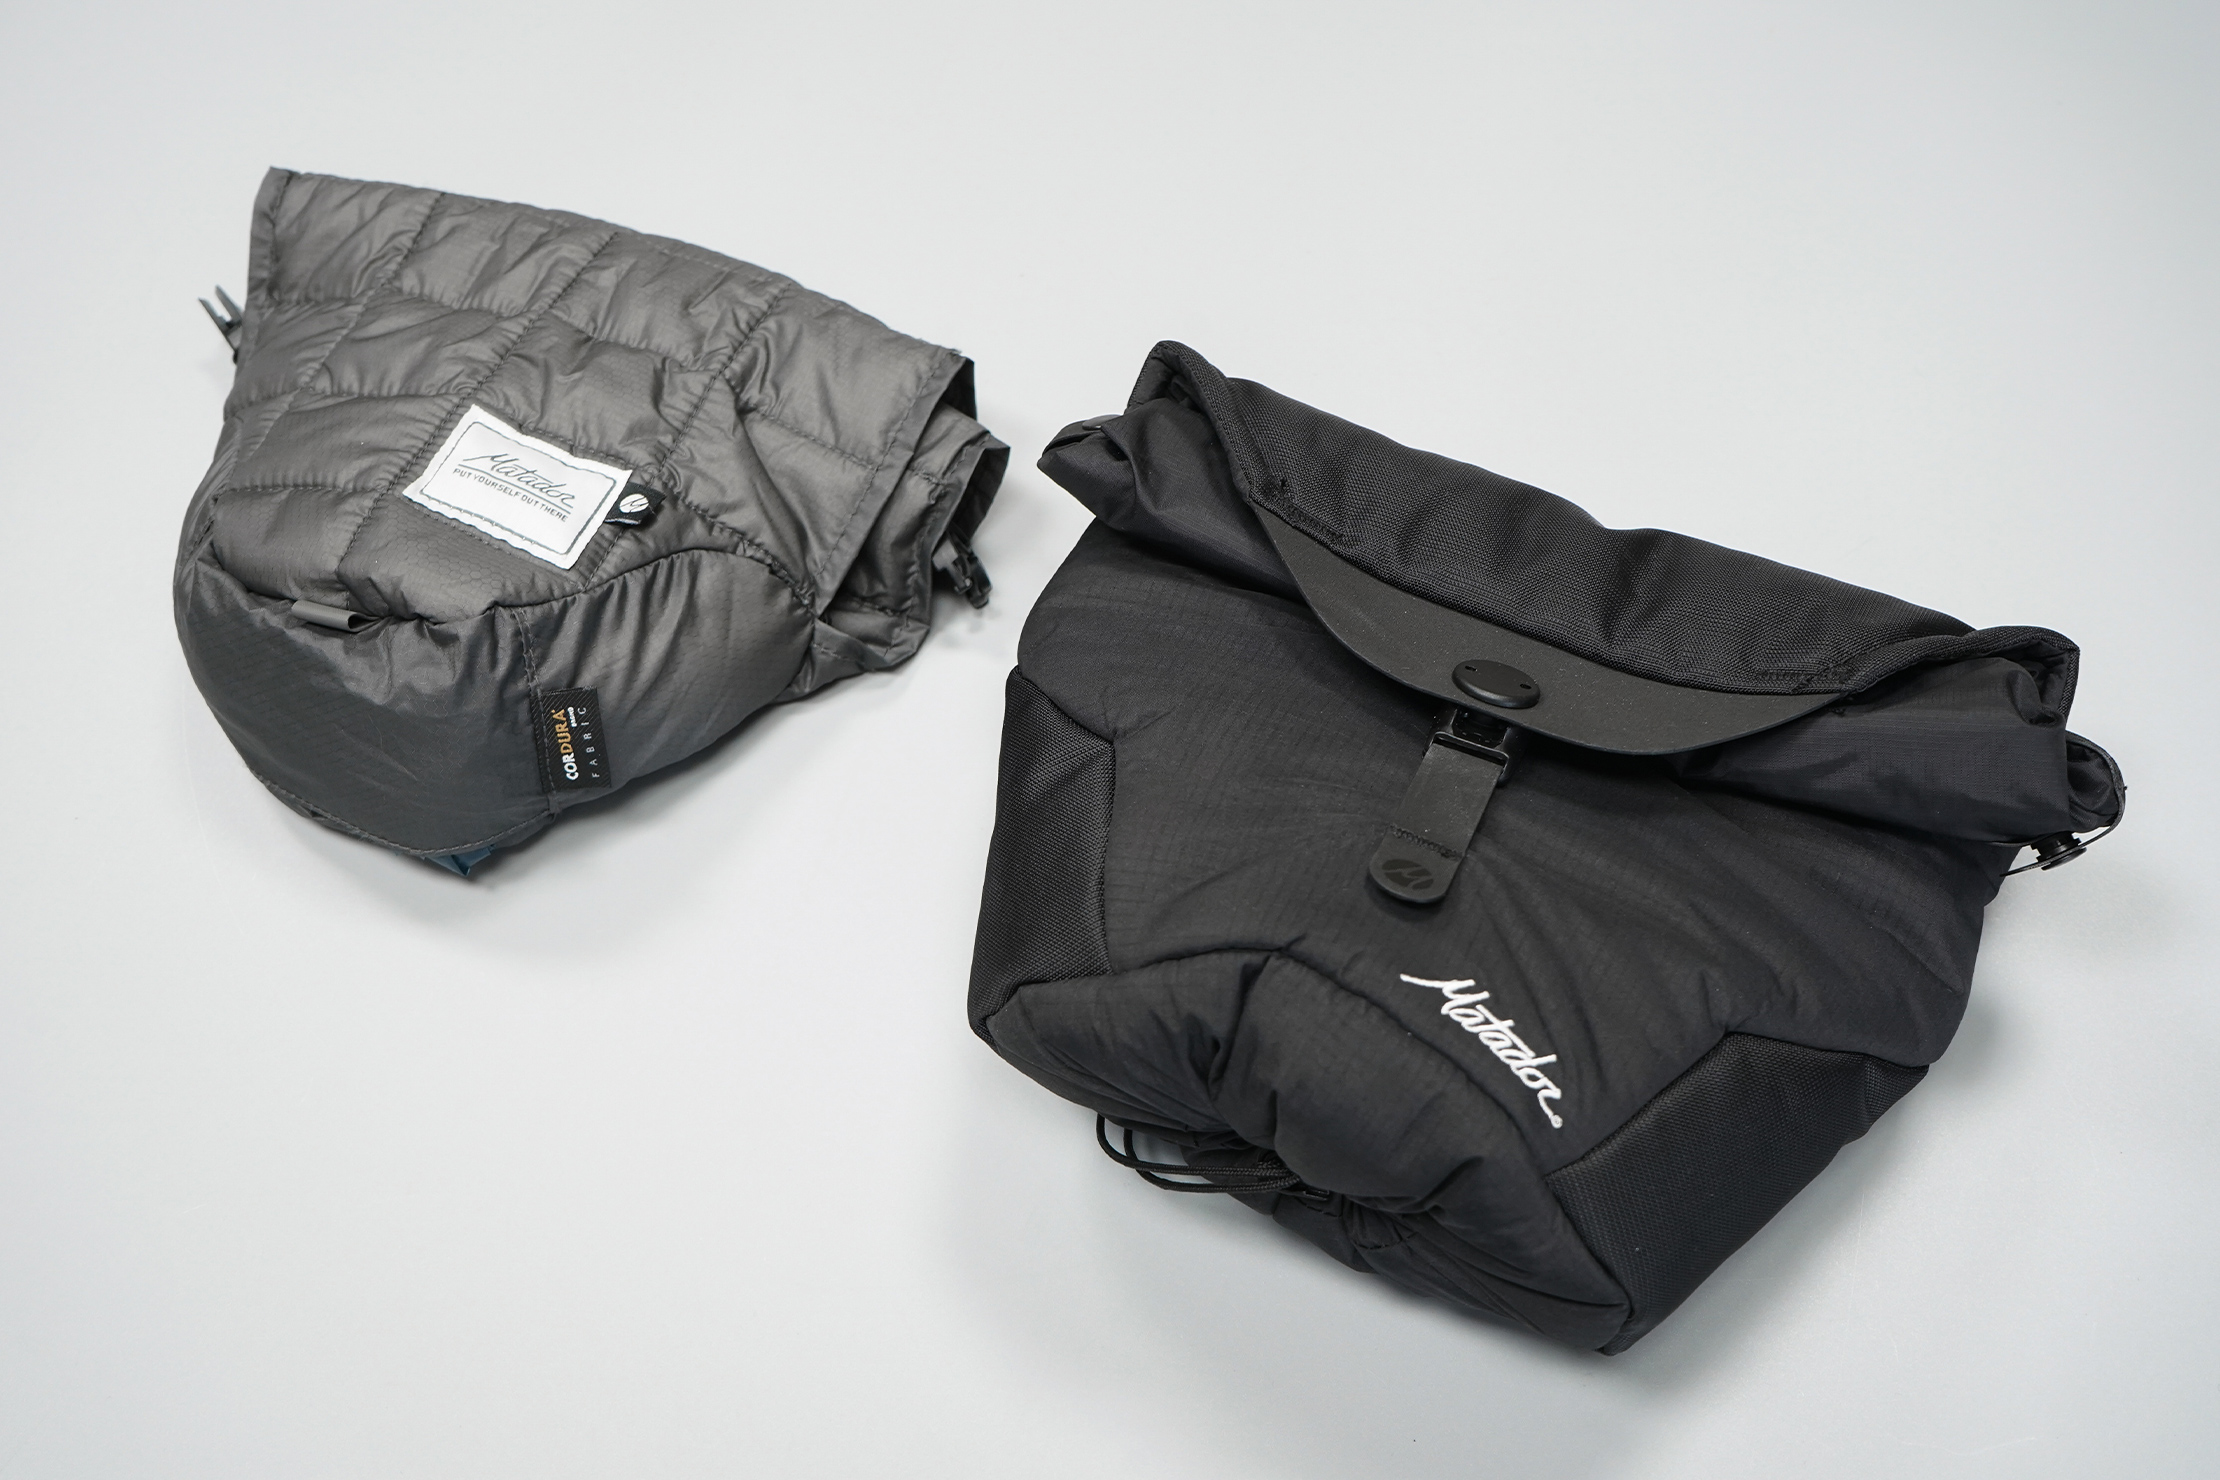 Matador Camera Base Layer 2.0 | The original on the left, the new version on the right.